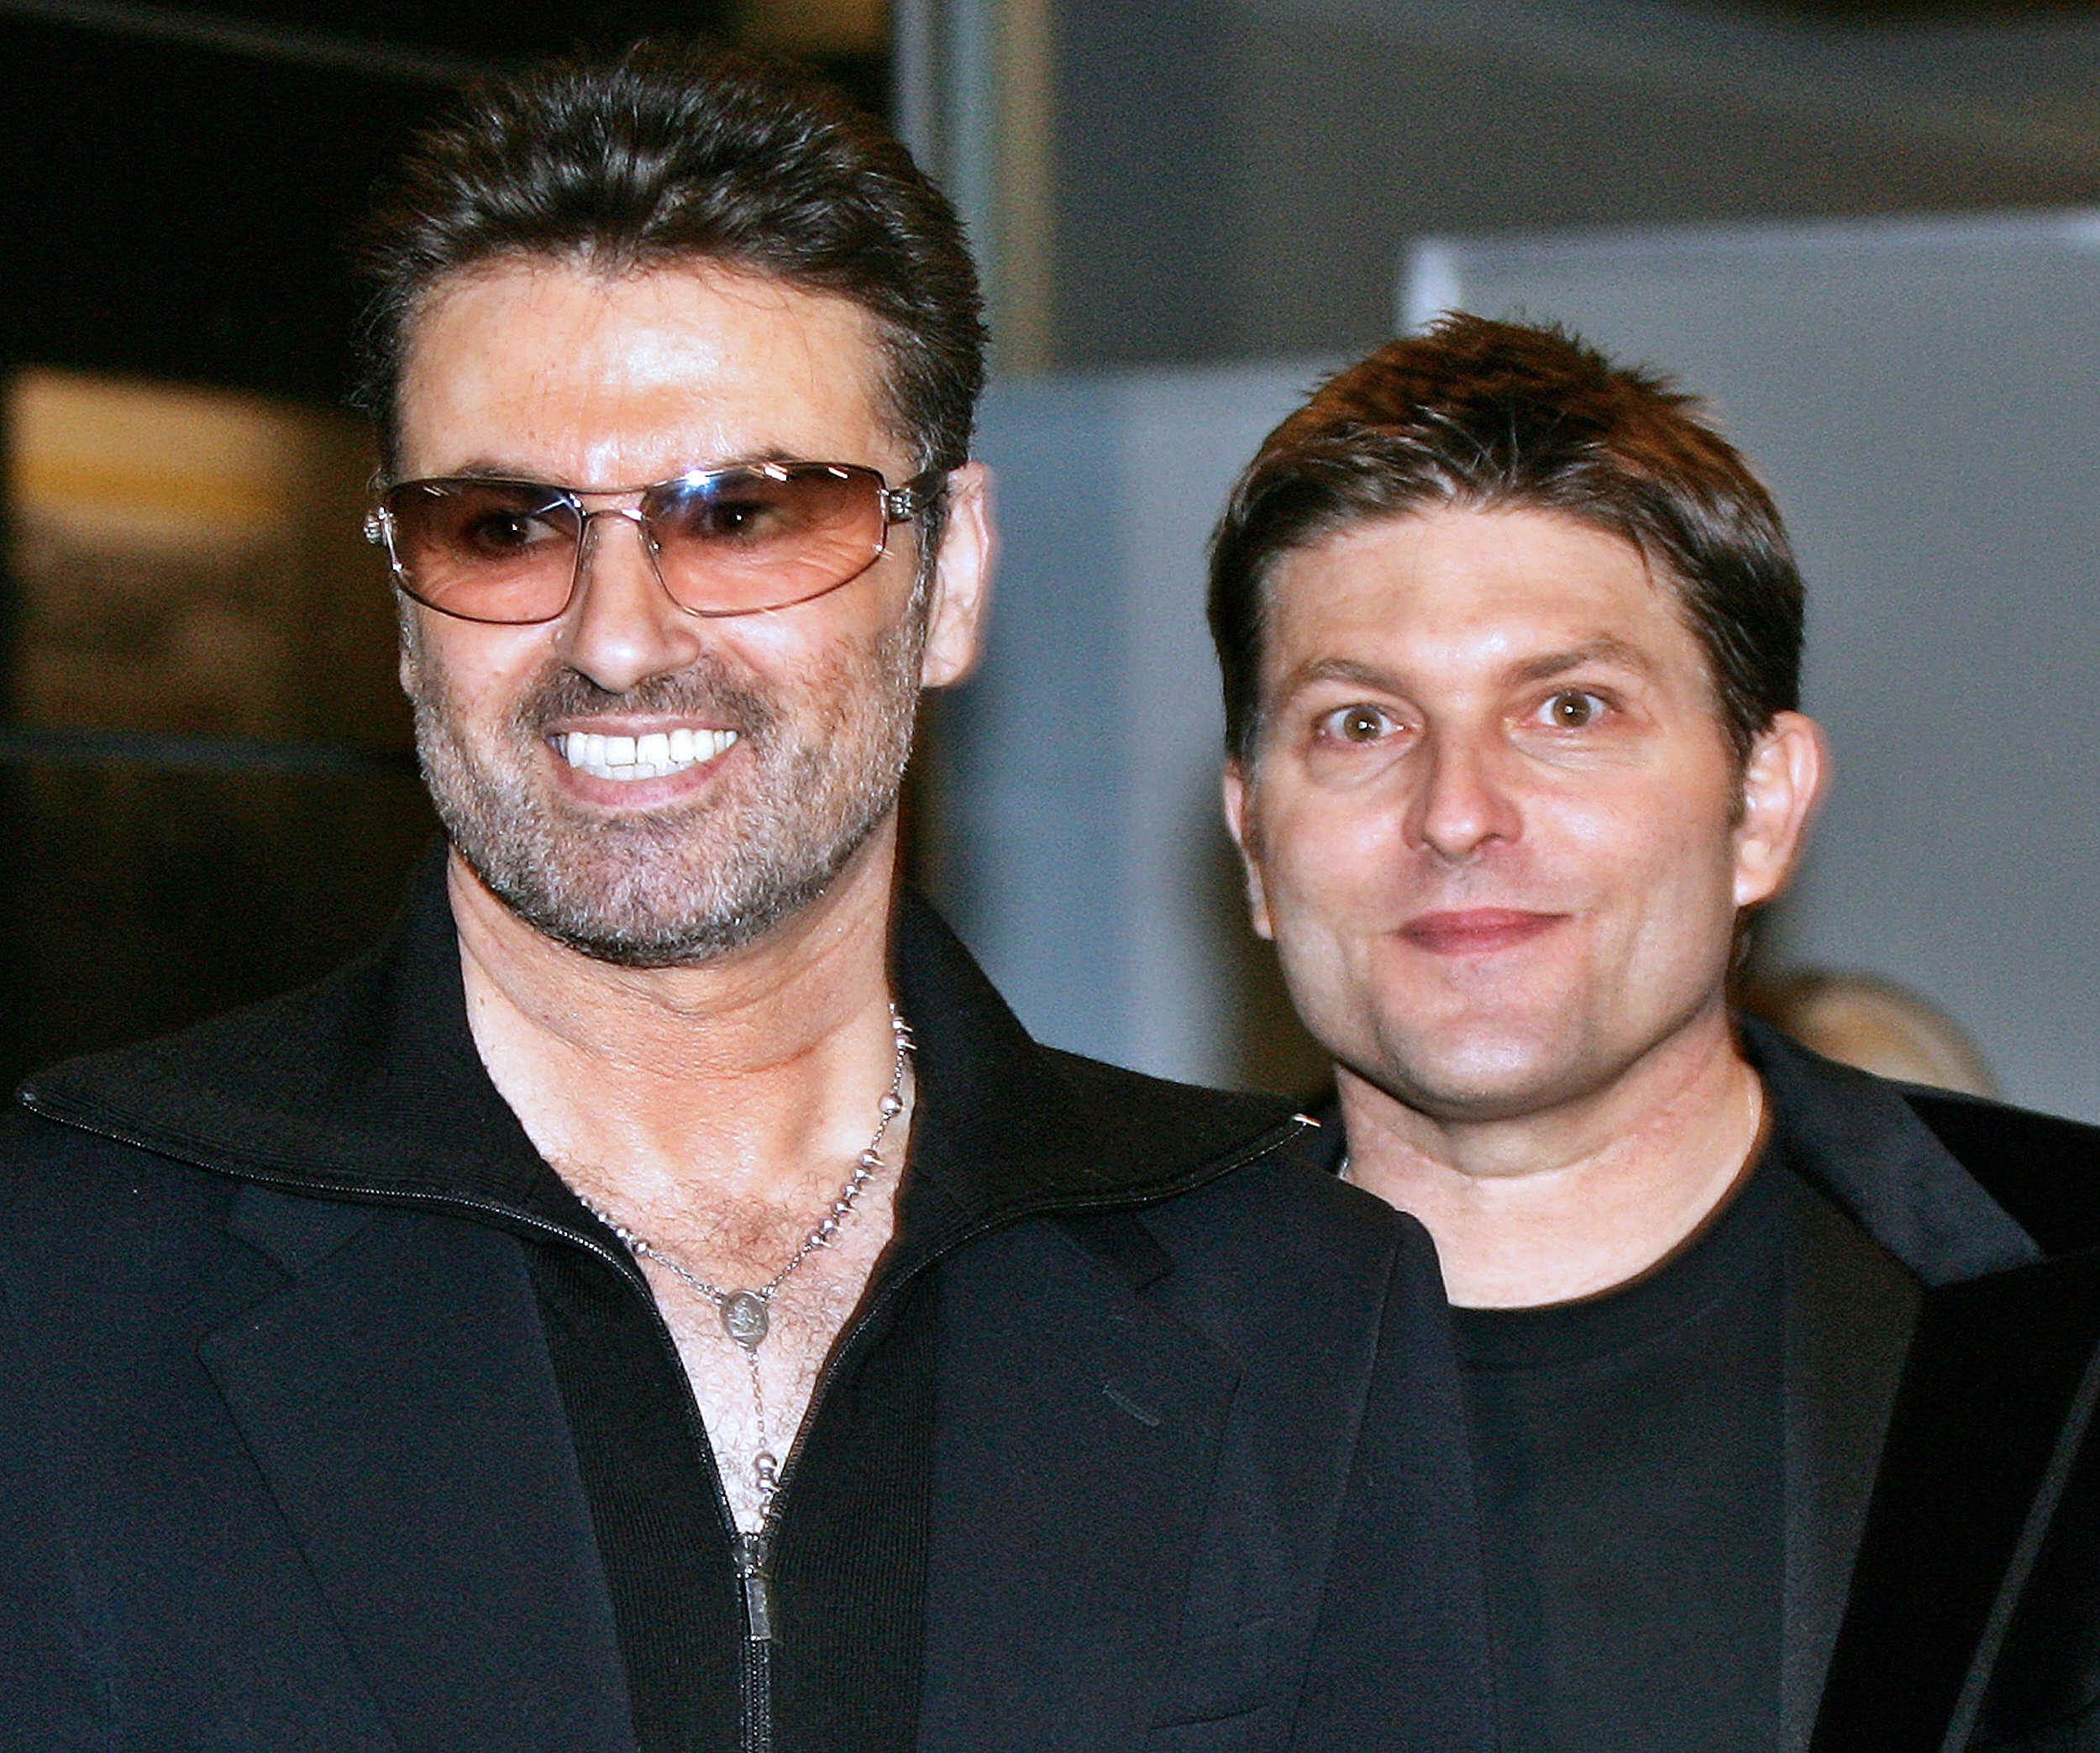 "(FILES) This file photo taken on December 15, 2005 shows British pop star George Michael (L) smiles with his partner Kenny Goss at a reception after the Japan premiere of his autobiographical movie ""George Michael, A Different Story"" at a restaurant in Tokyo. British pop singer George Michael, who rose to fame with the band Wham! and sold more than 100 million albums in his career, has died aged 53, his publicist said on December 25, 2016. / AFP PHOTO / --/AFP/Getty Images"